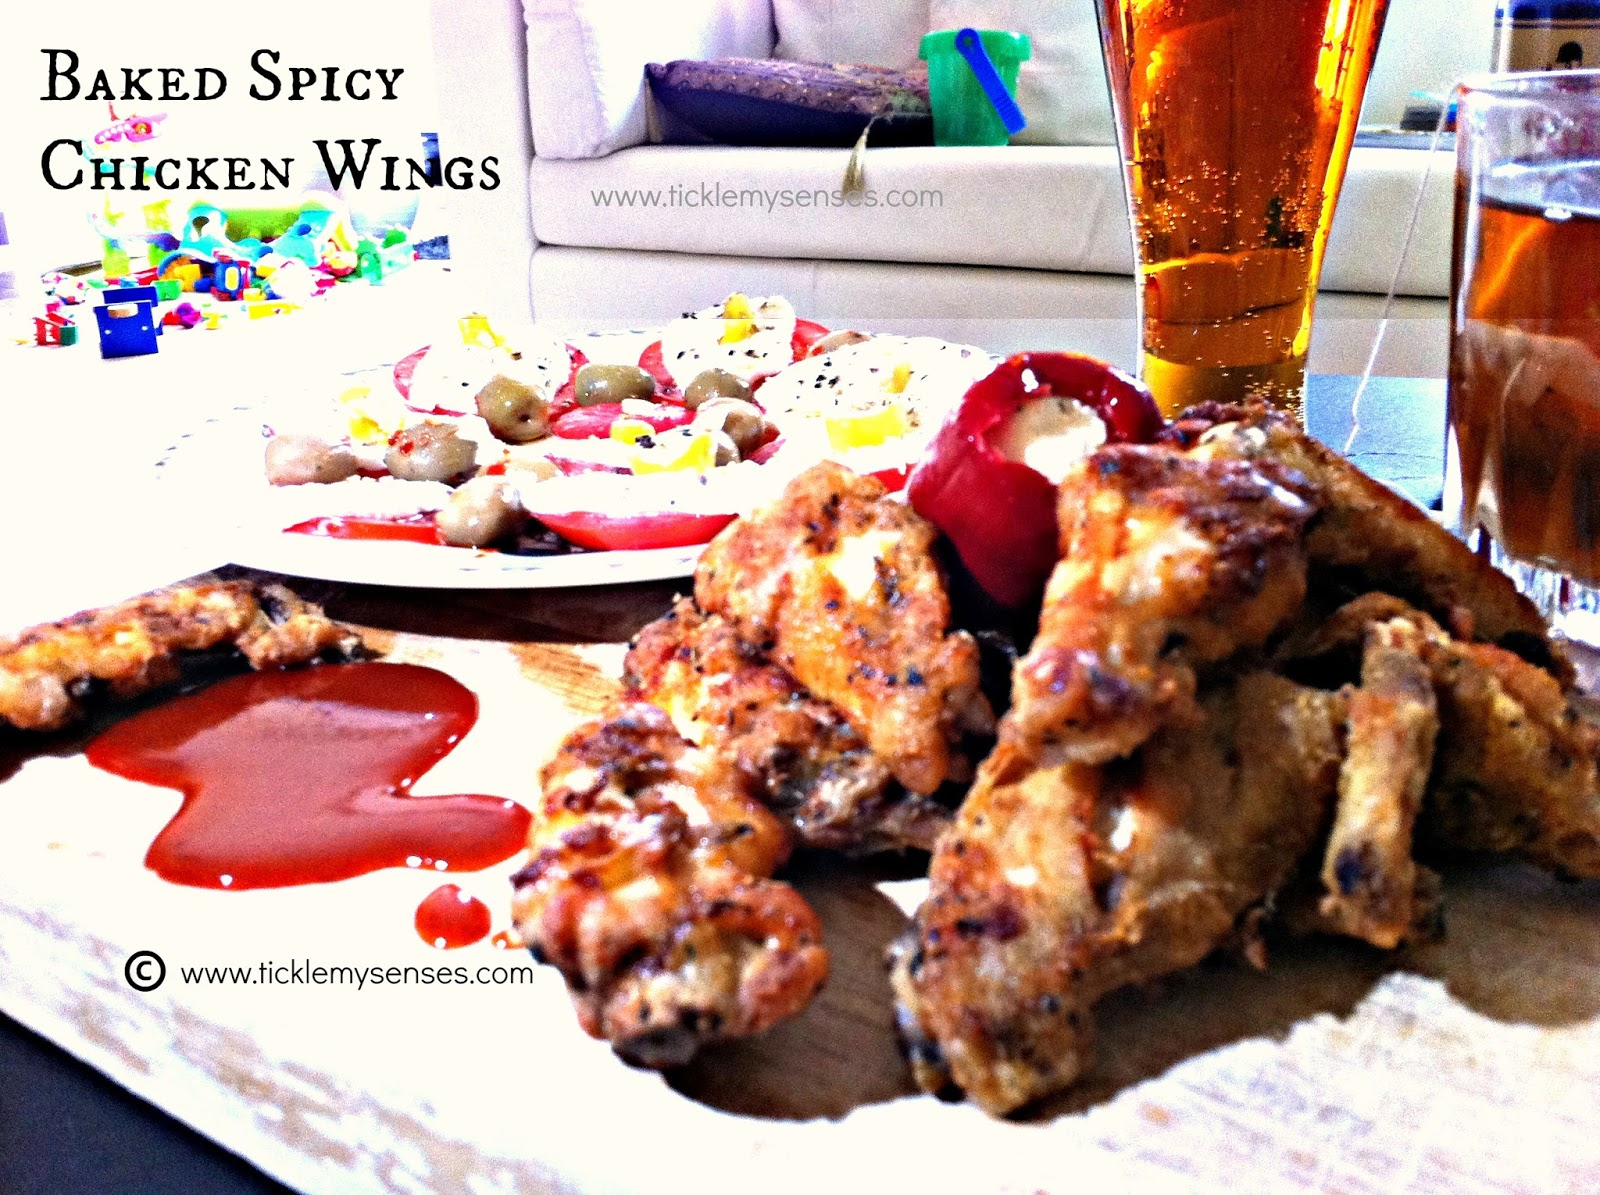 ... My Senses: Baked Buffalo Chicken Wings/ Baked Spicy Chicken Wings